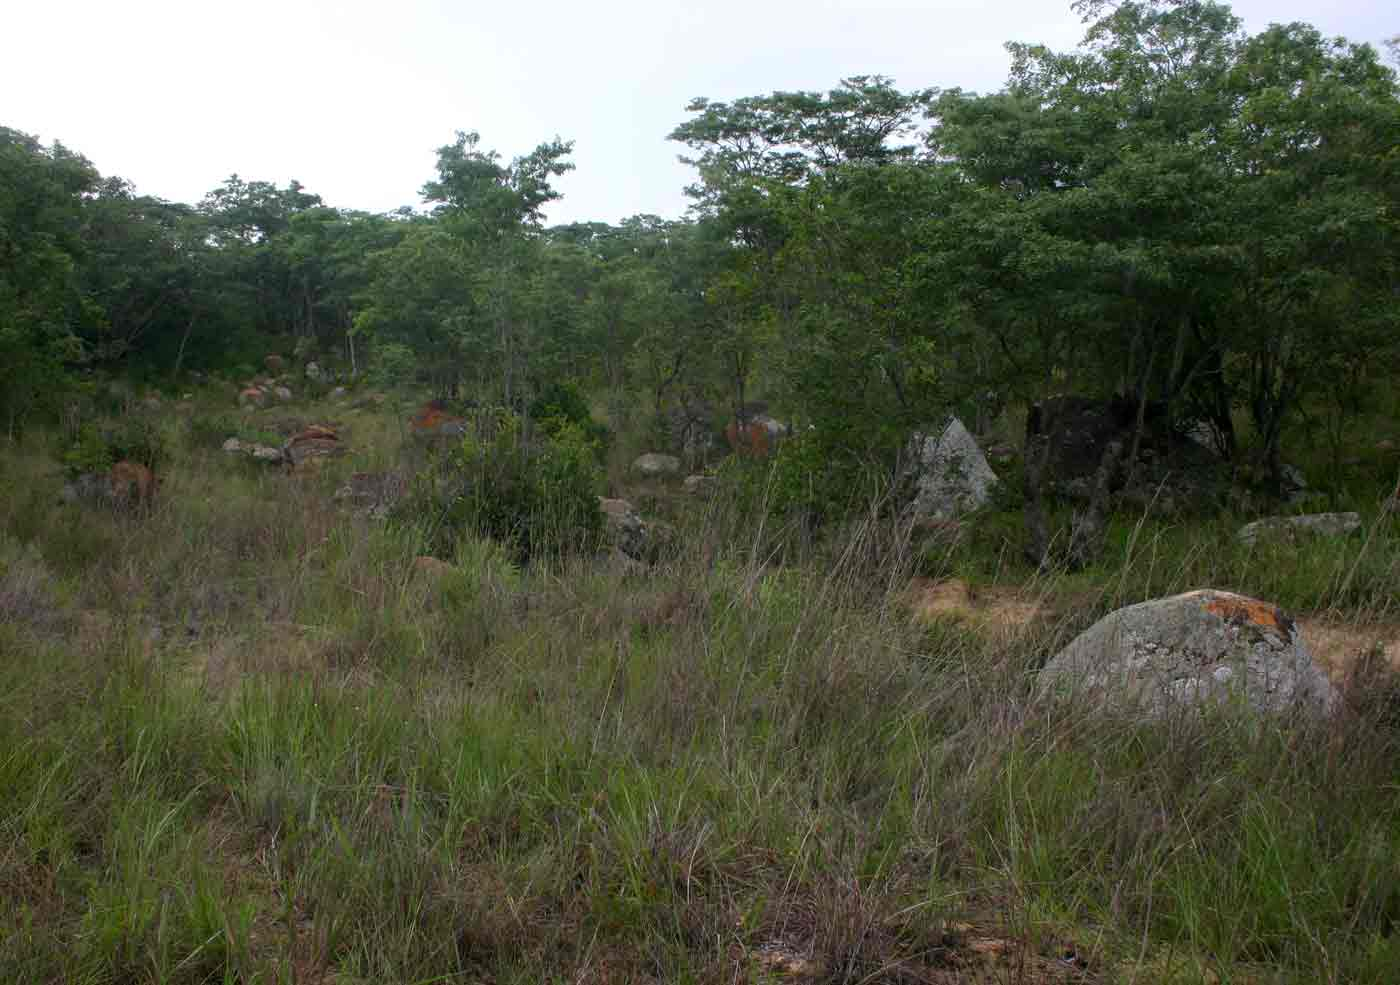 Grassland and miombo woodland